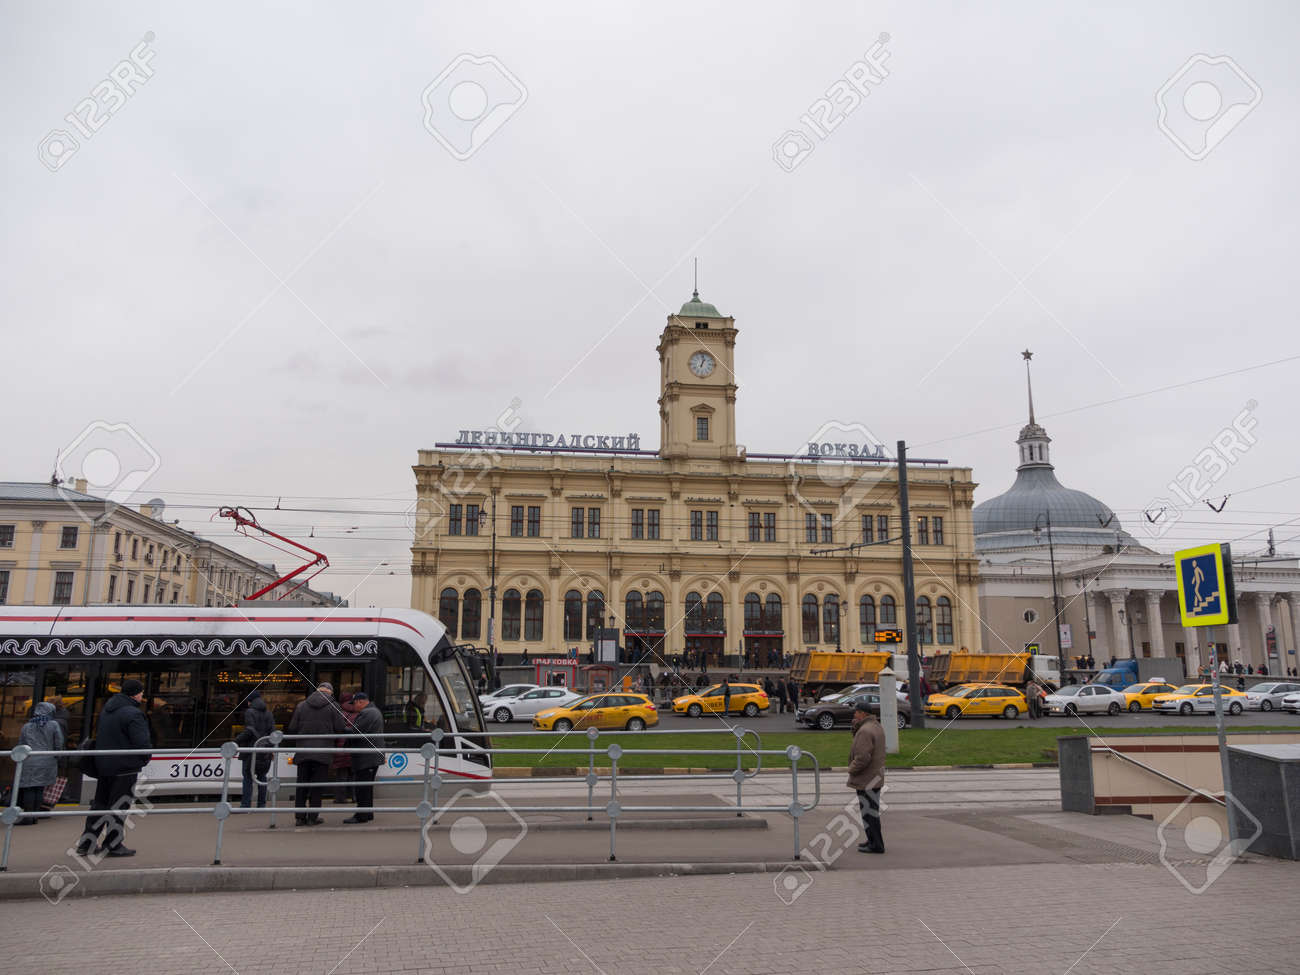 How to get to the Leningrad station